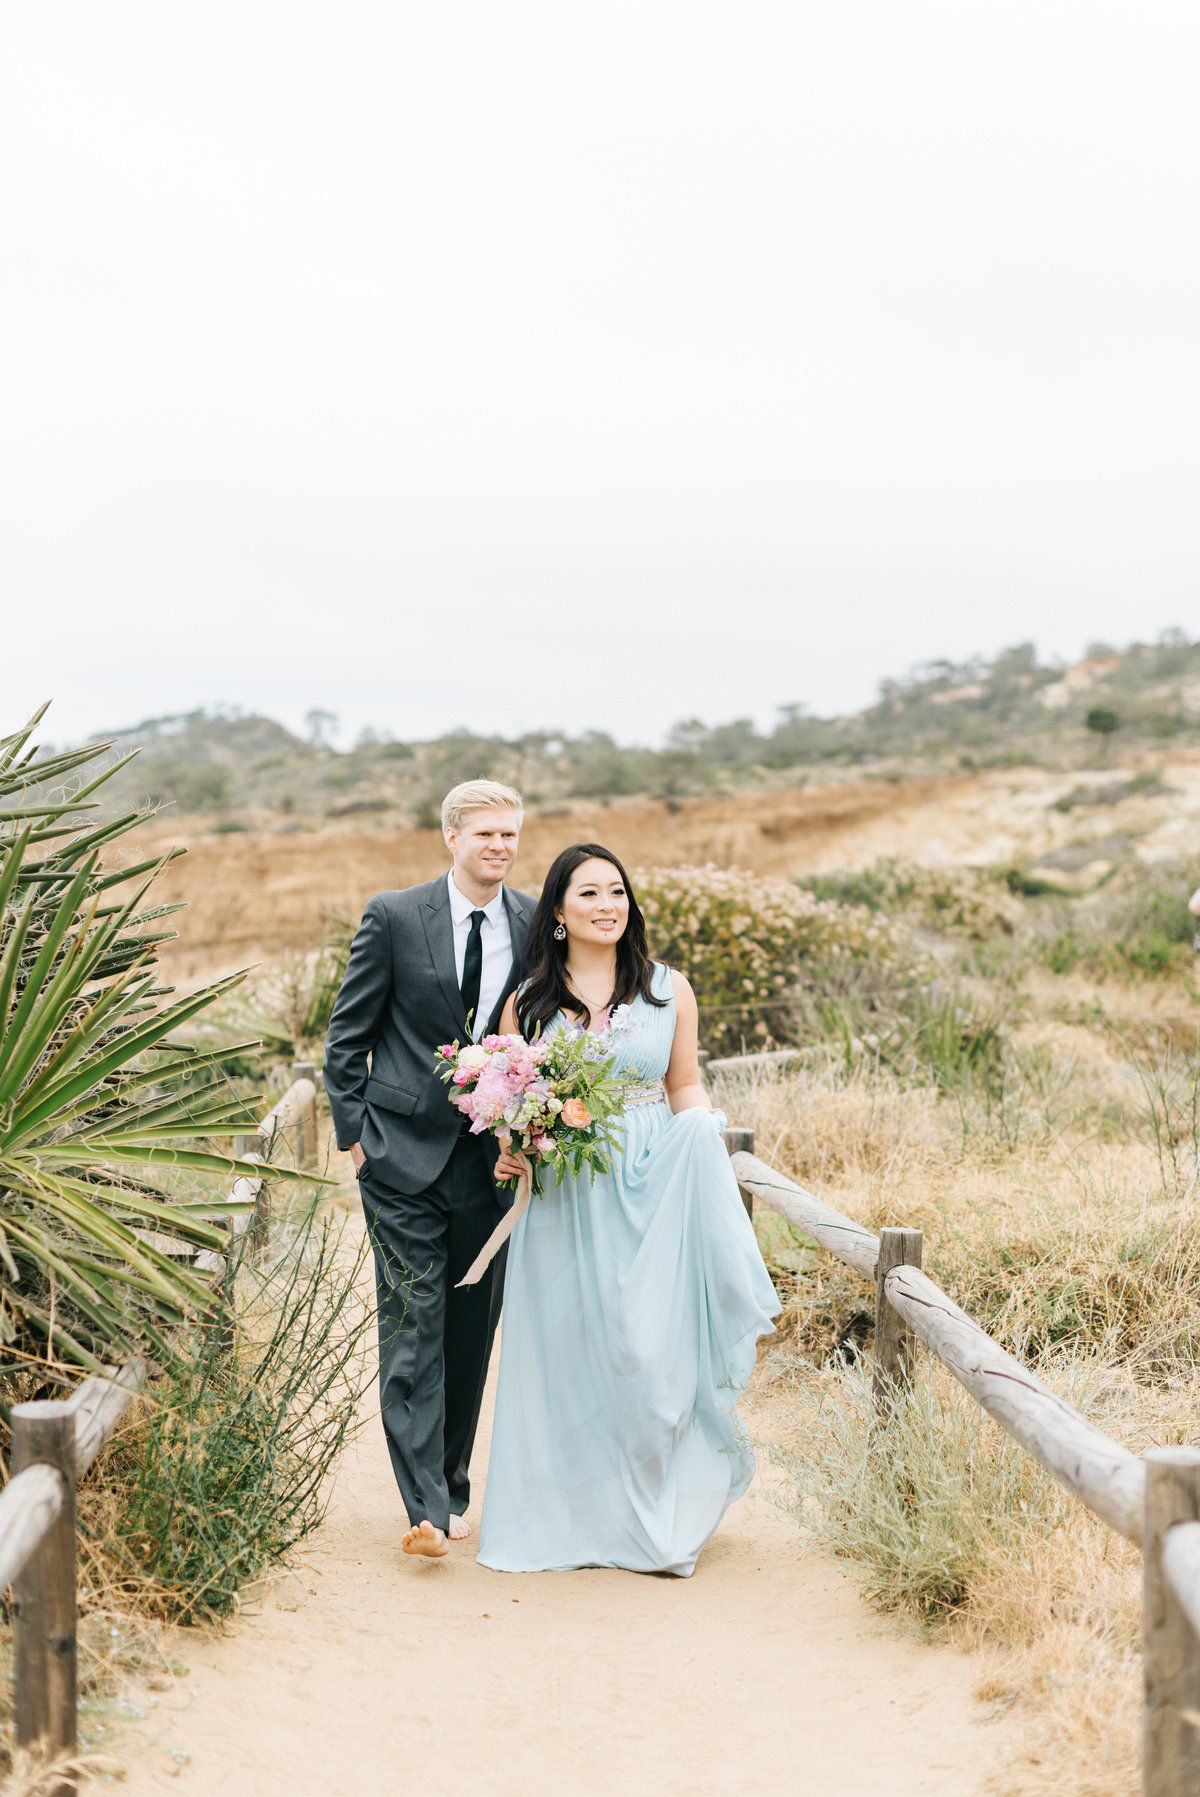 mary and eric san diego wedding 2018-11